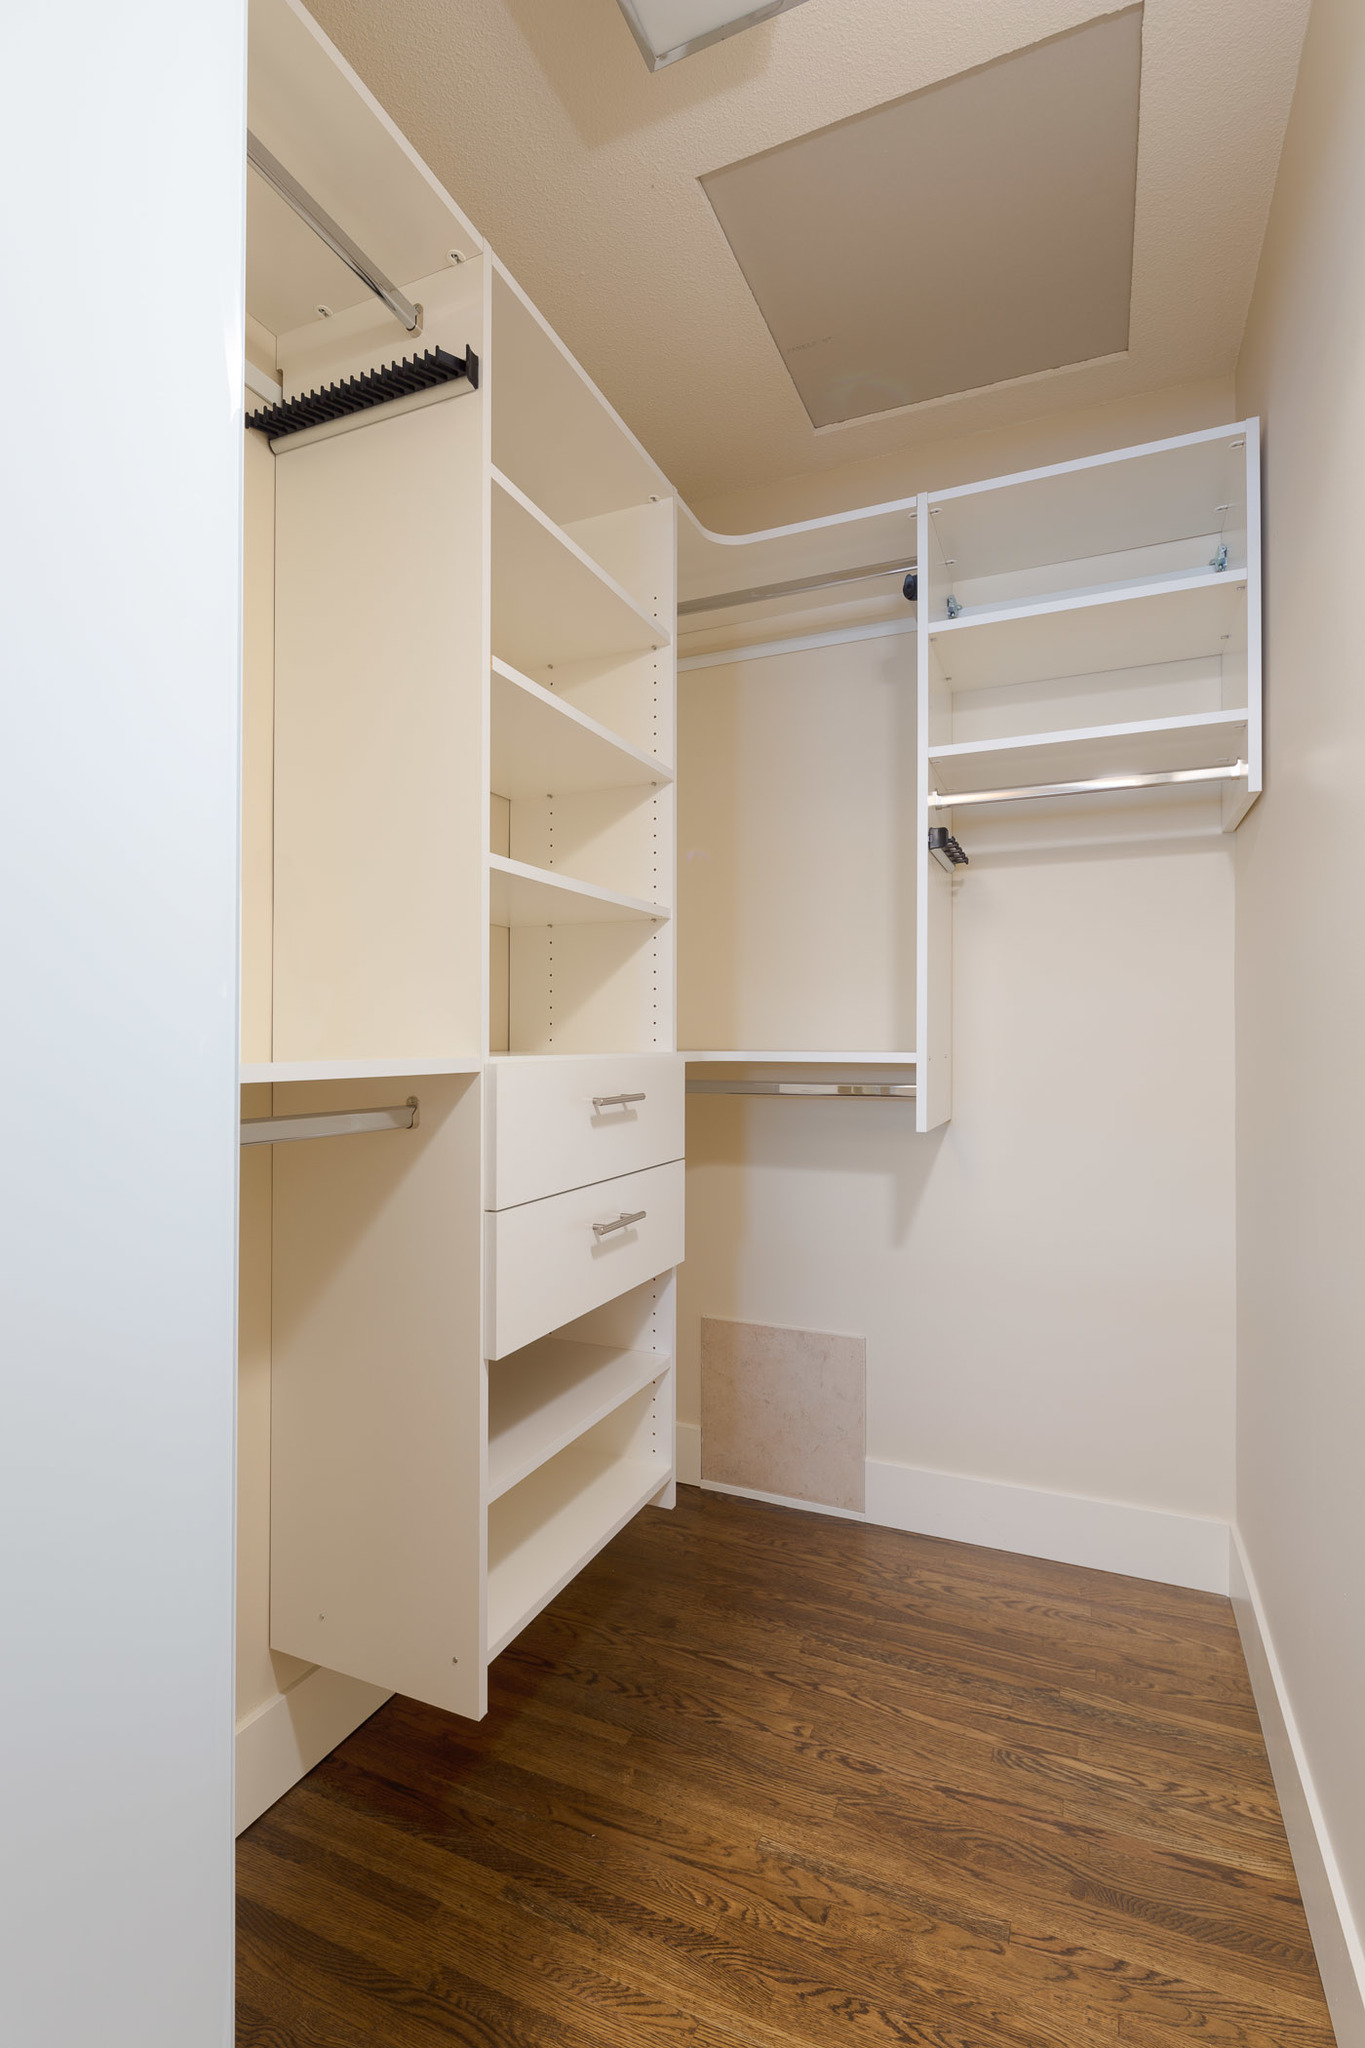 closet with built in shelves and organizing units